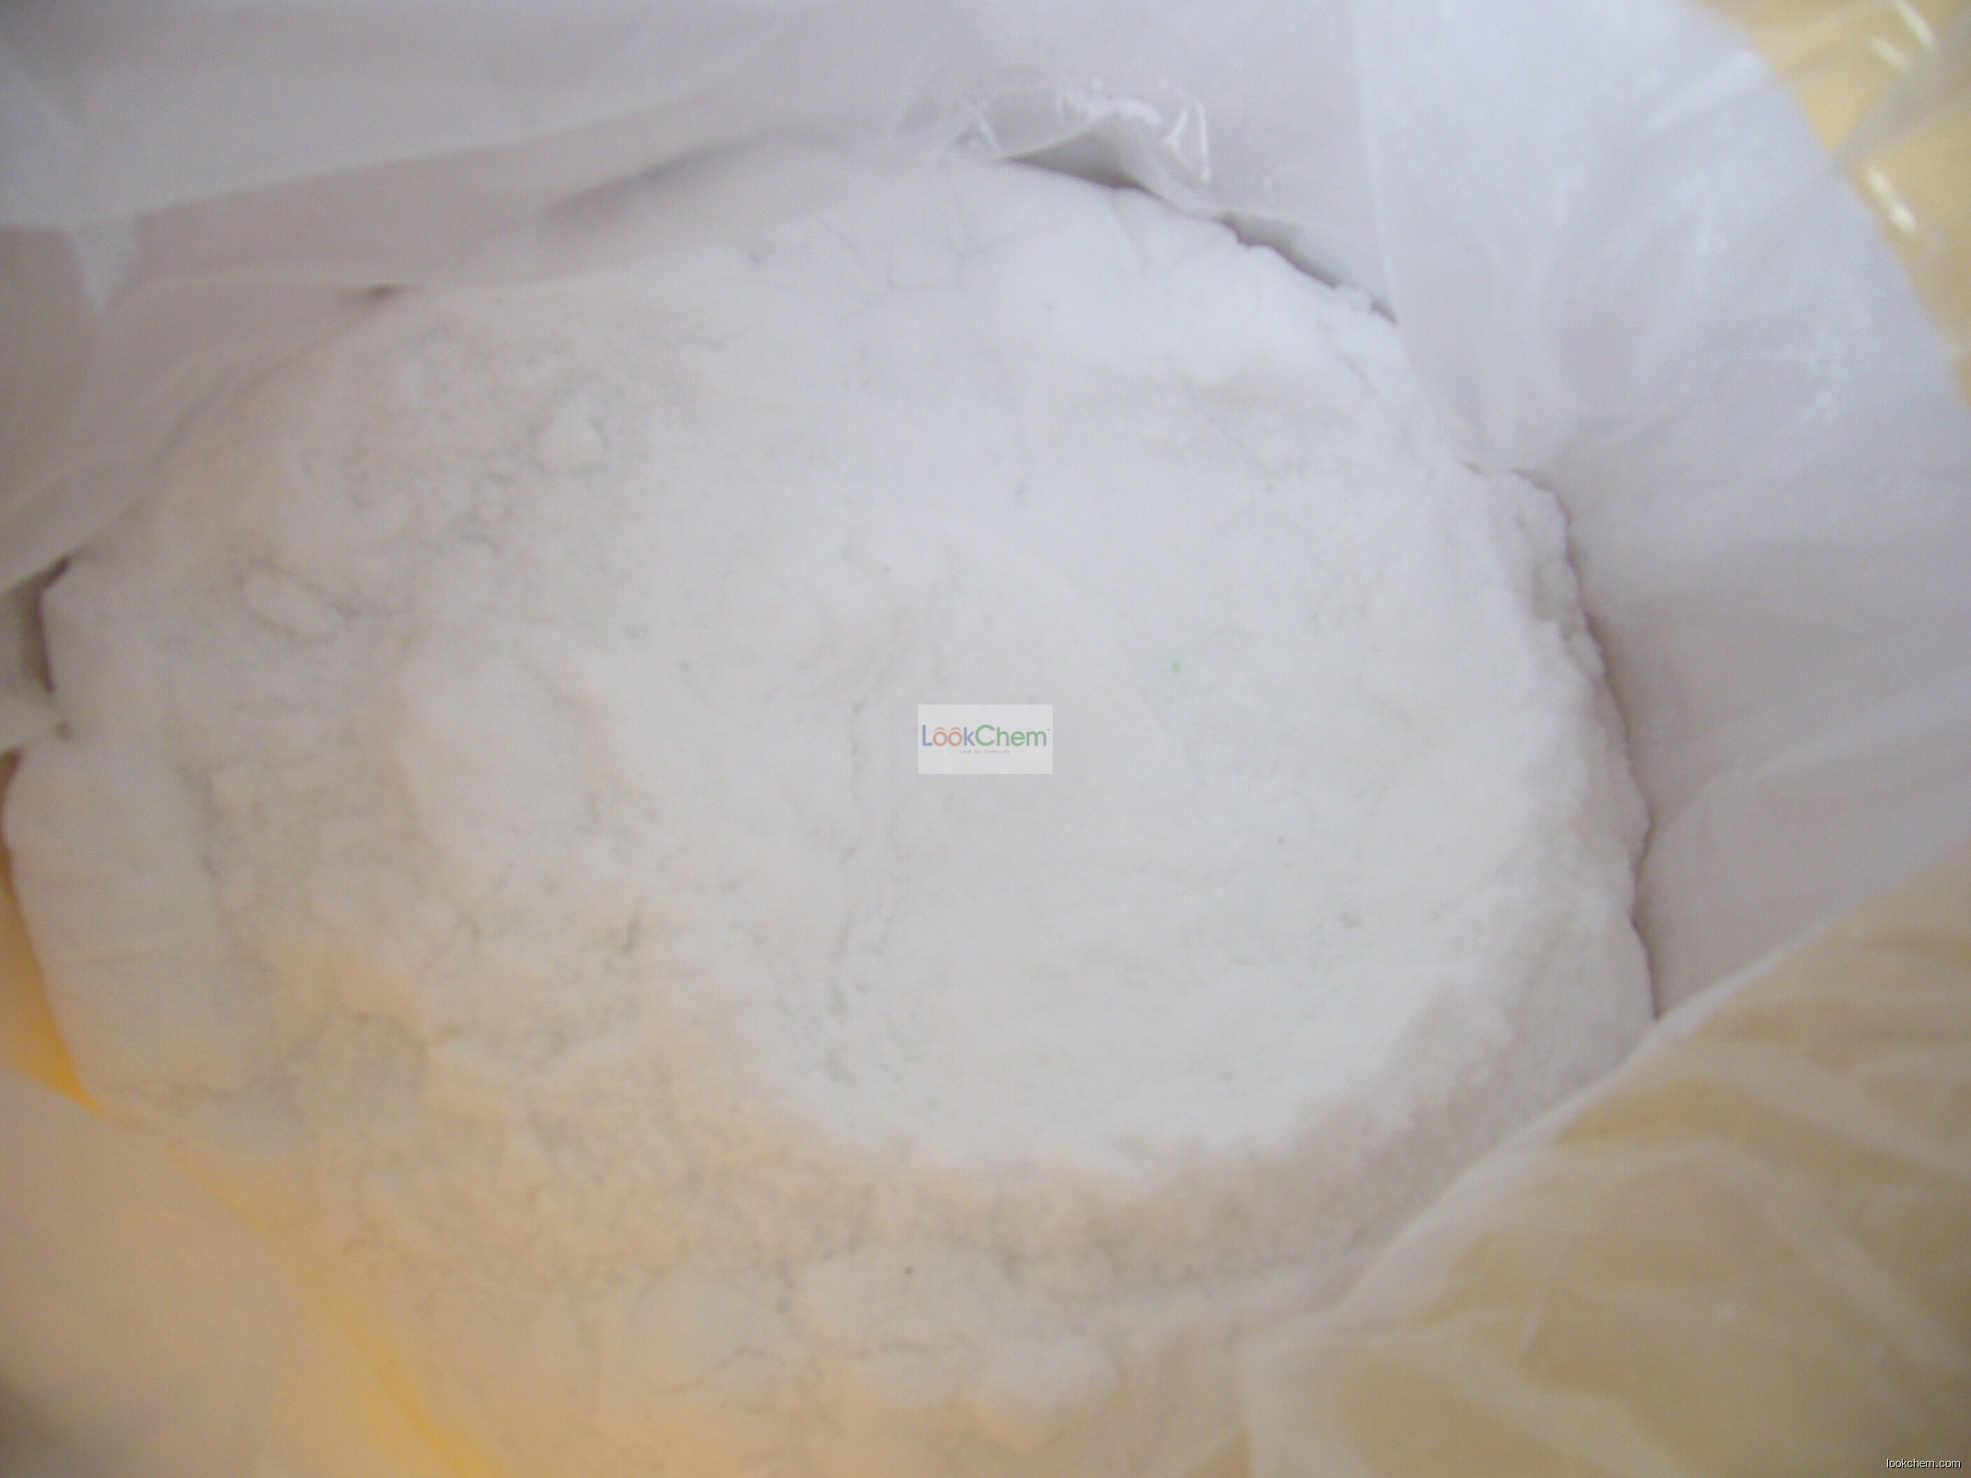 Ammonium Bifluoride,ABF China factory, on hot sale, best quality with competitive price